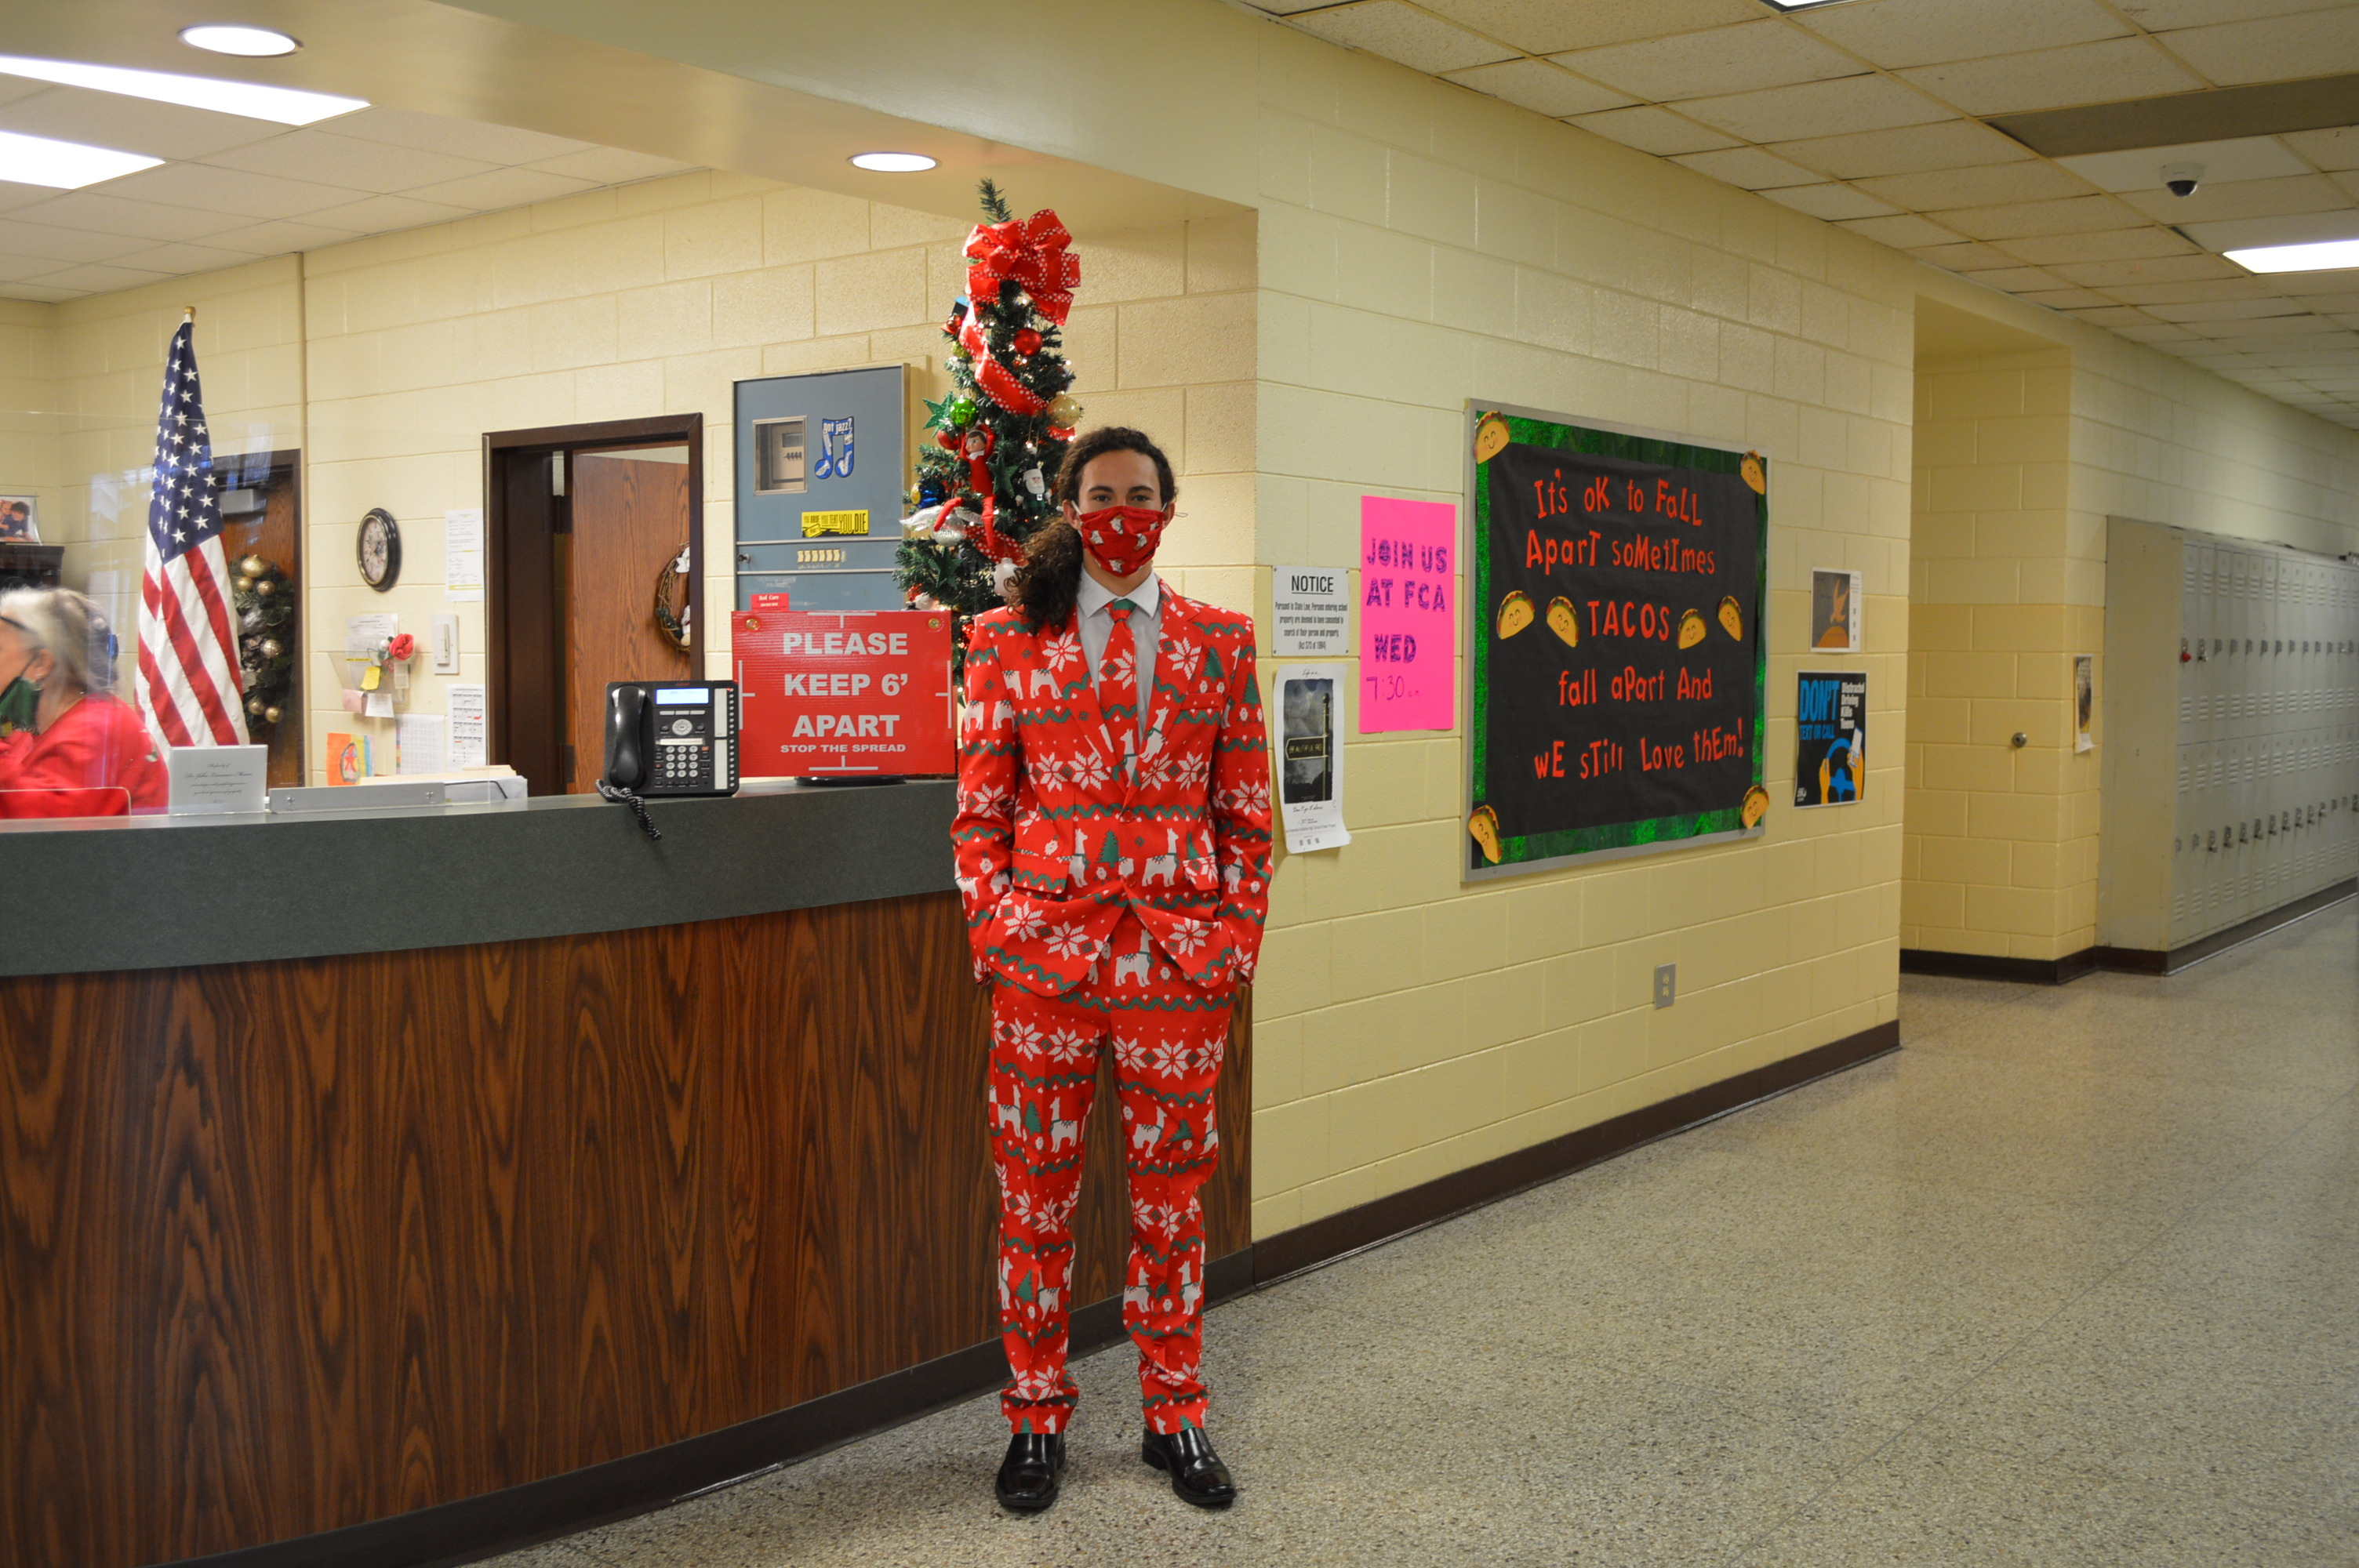 Student decked out in his holiday suit.